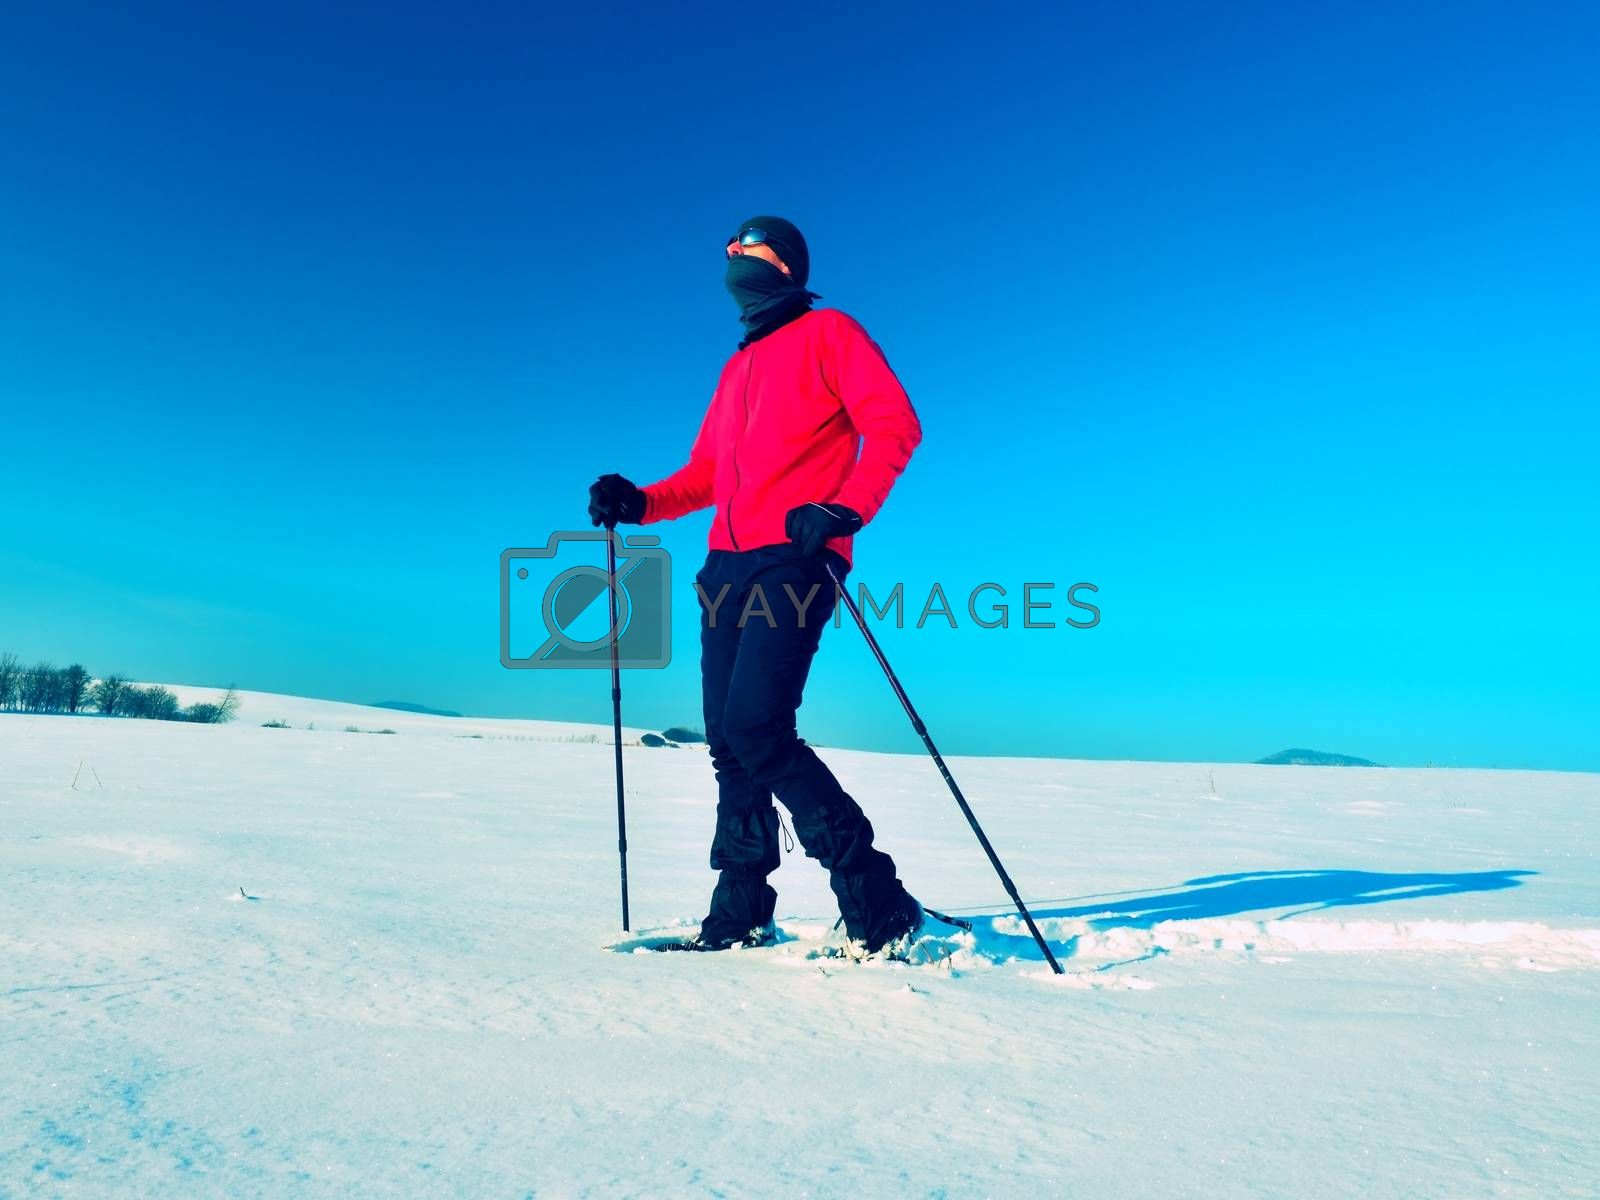 Tourist with snowshoes walk in snowy drift. Sunny freeze weather. Hiker in pink sports jacket and black trekking trousers snowshoeing in powder snow.